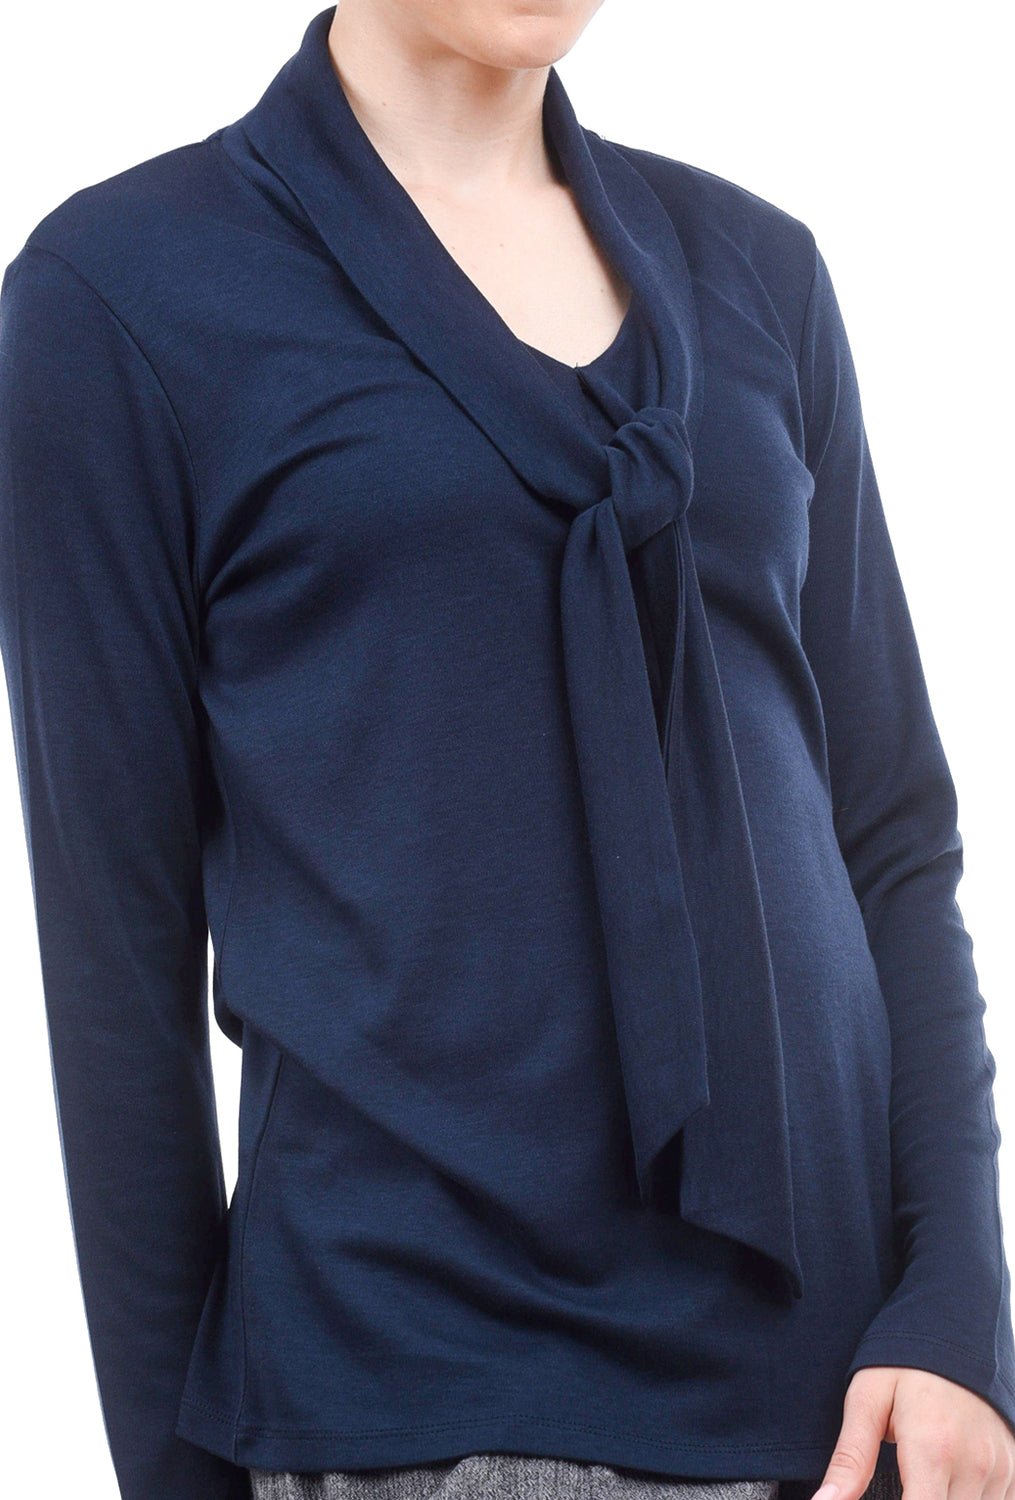 People Tree Isabel Tie Top, Navy